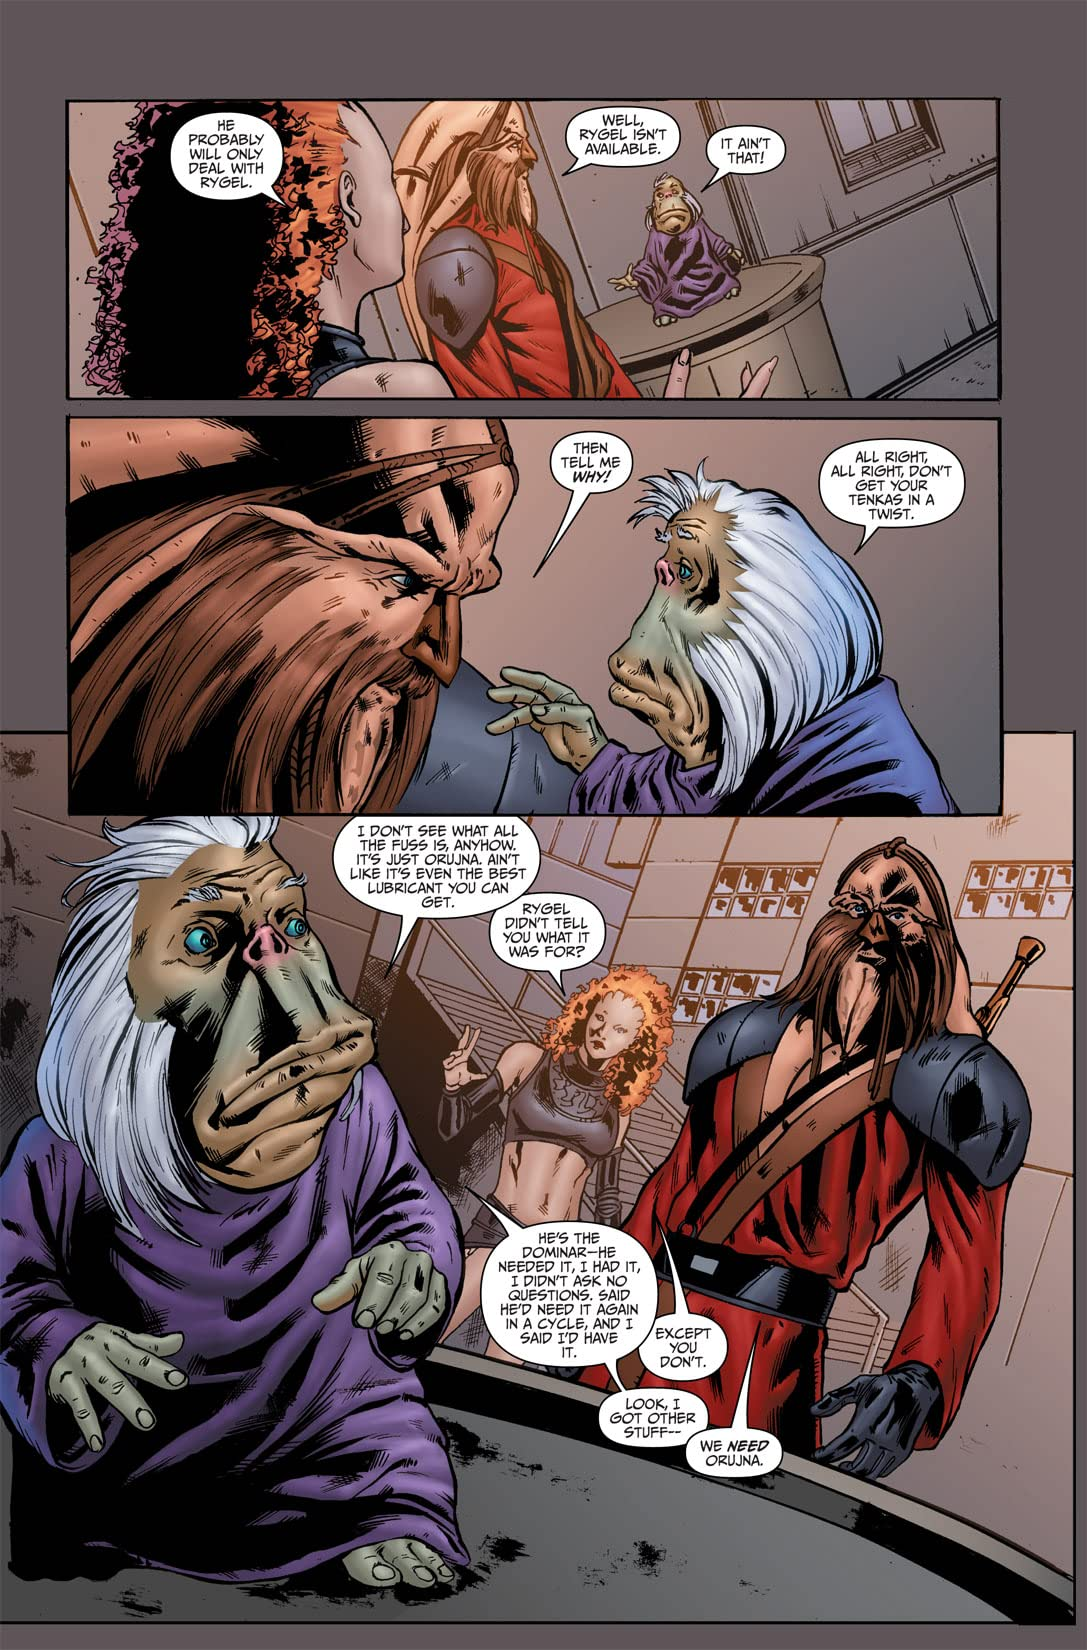 Farscape: D'Argo's Lament Vol. 1 #1 (of 4)